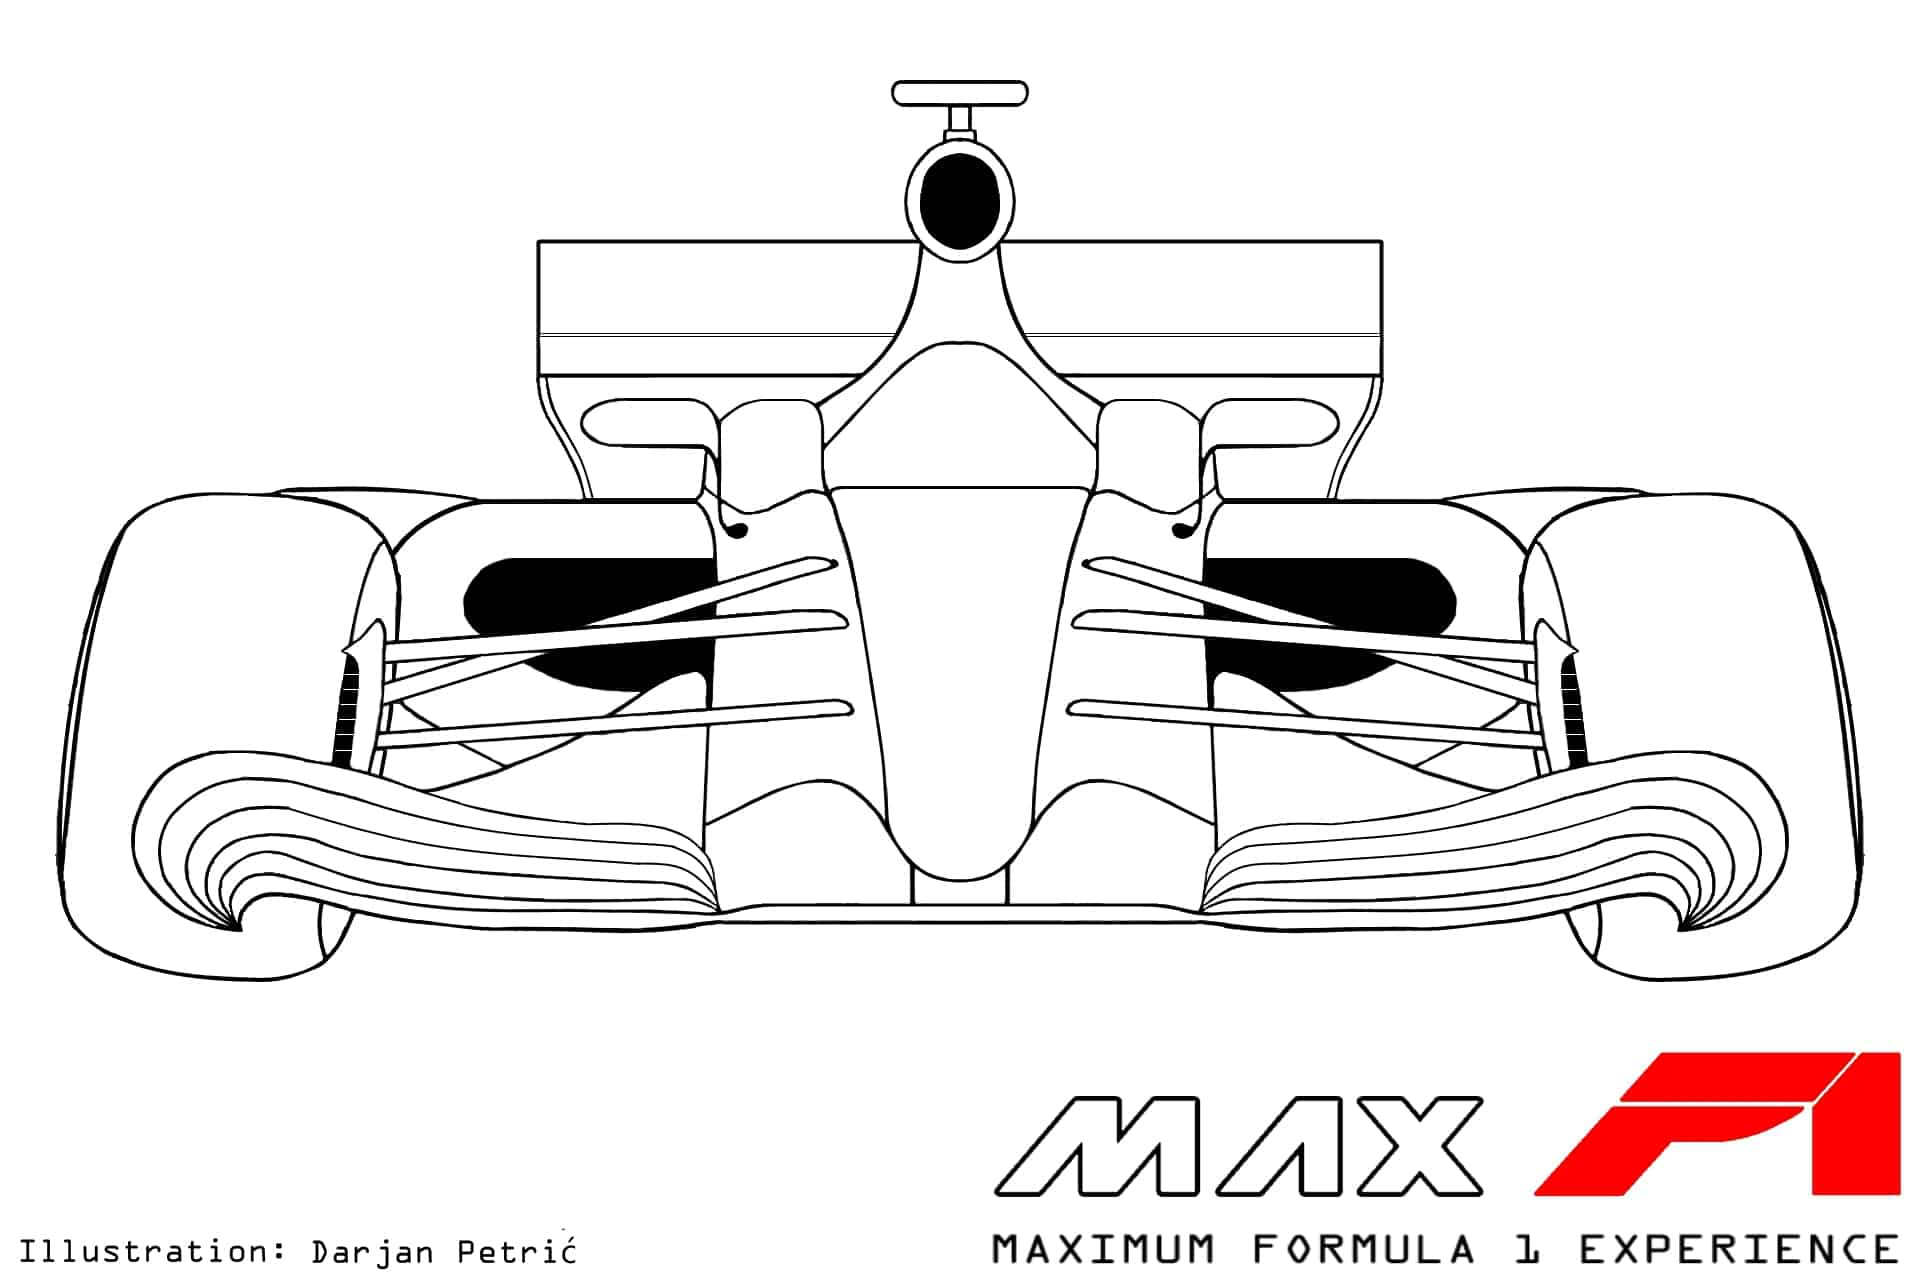 hight resolution of formula 1 2017 car front technical drawing by darjan petric maxf1 net eng red